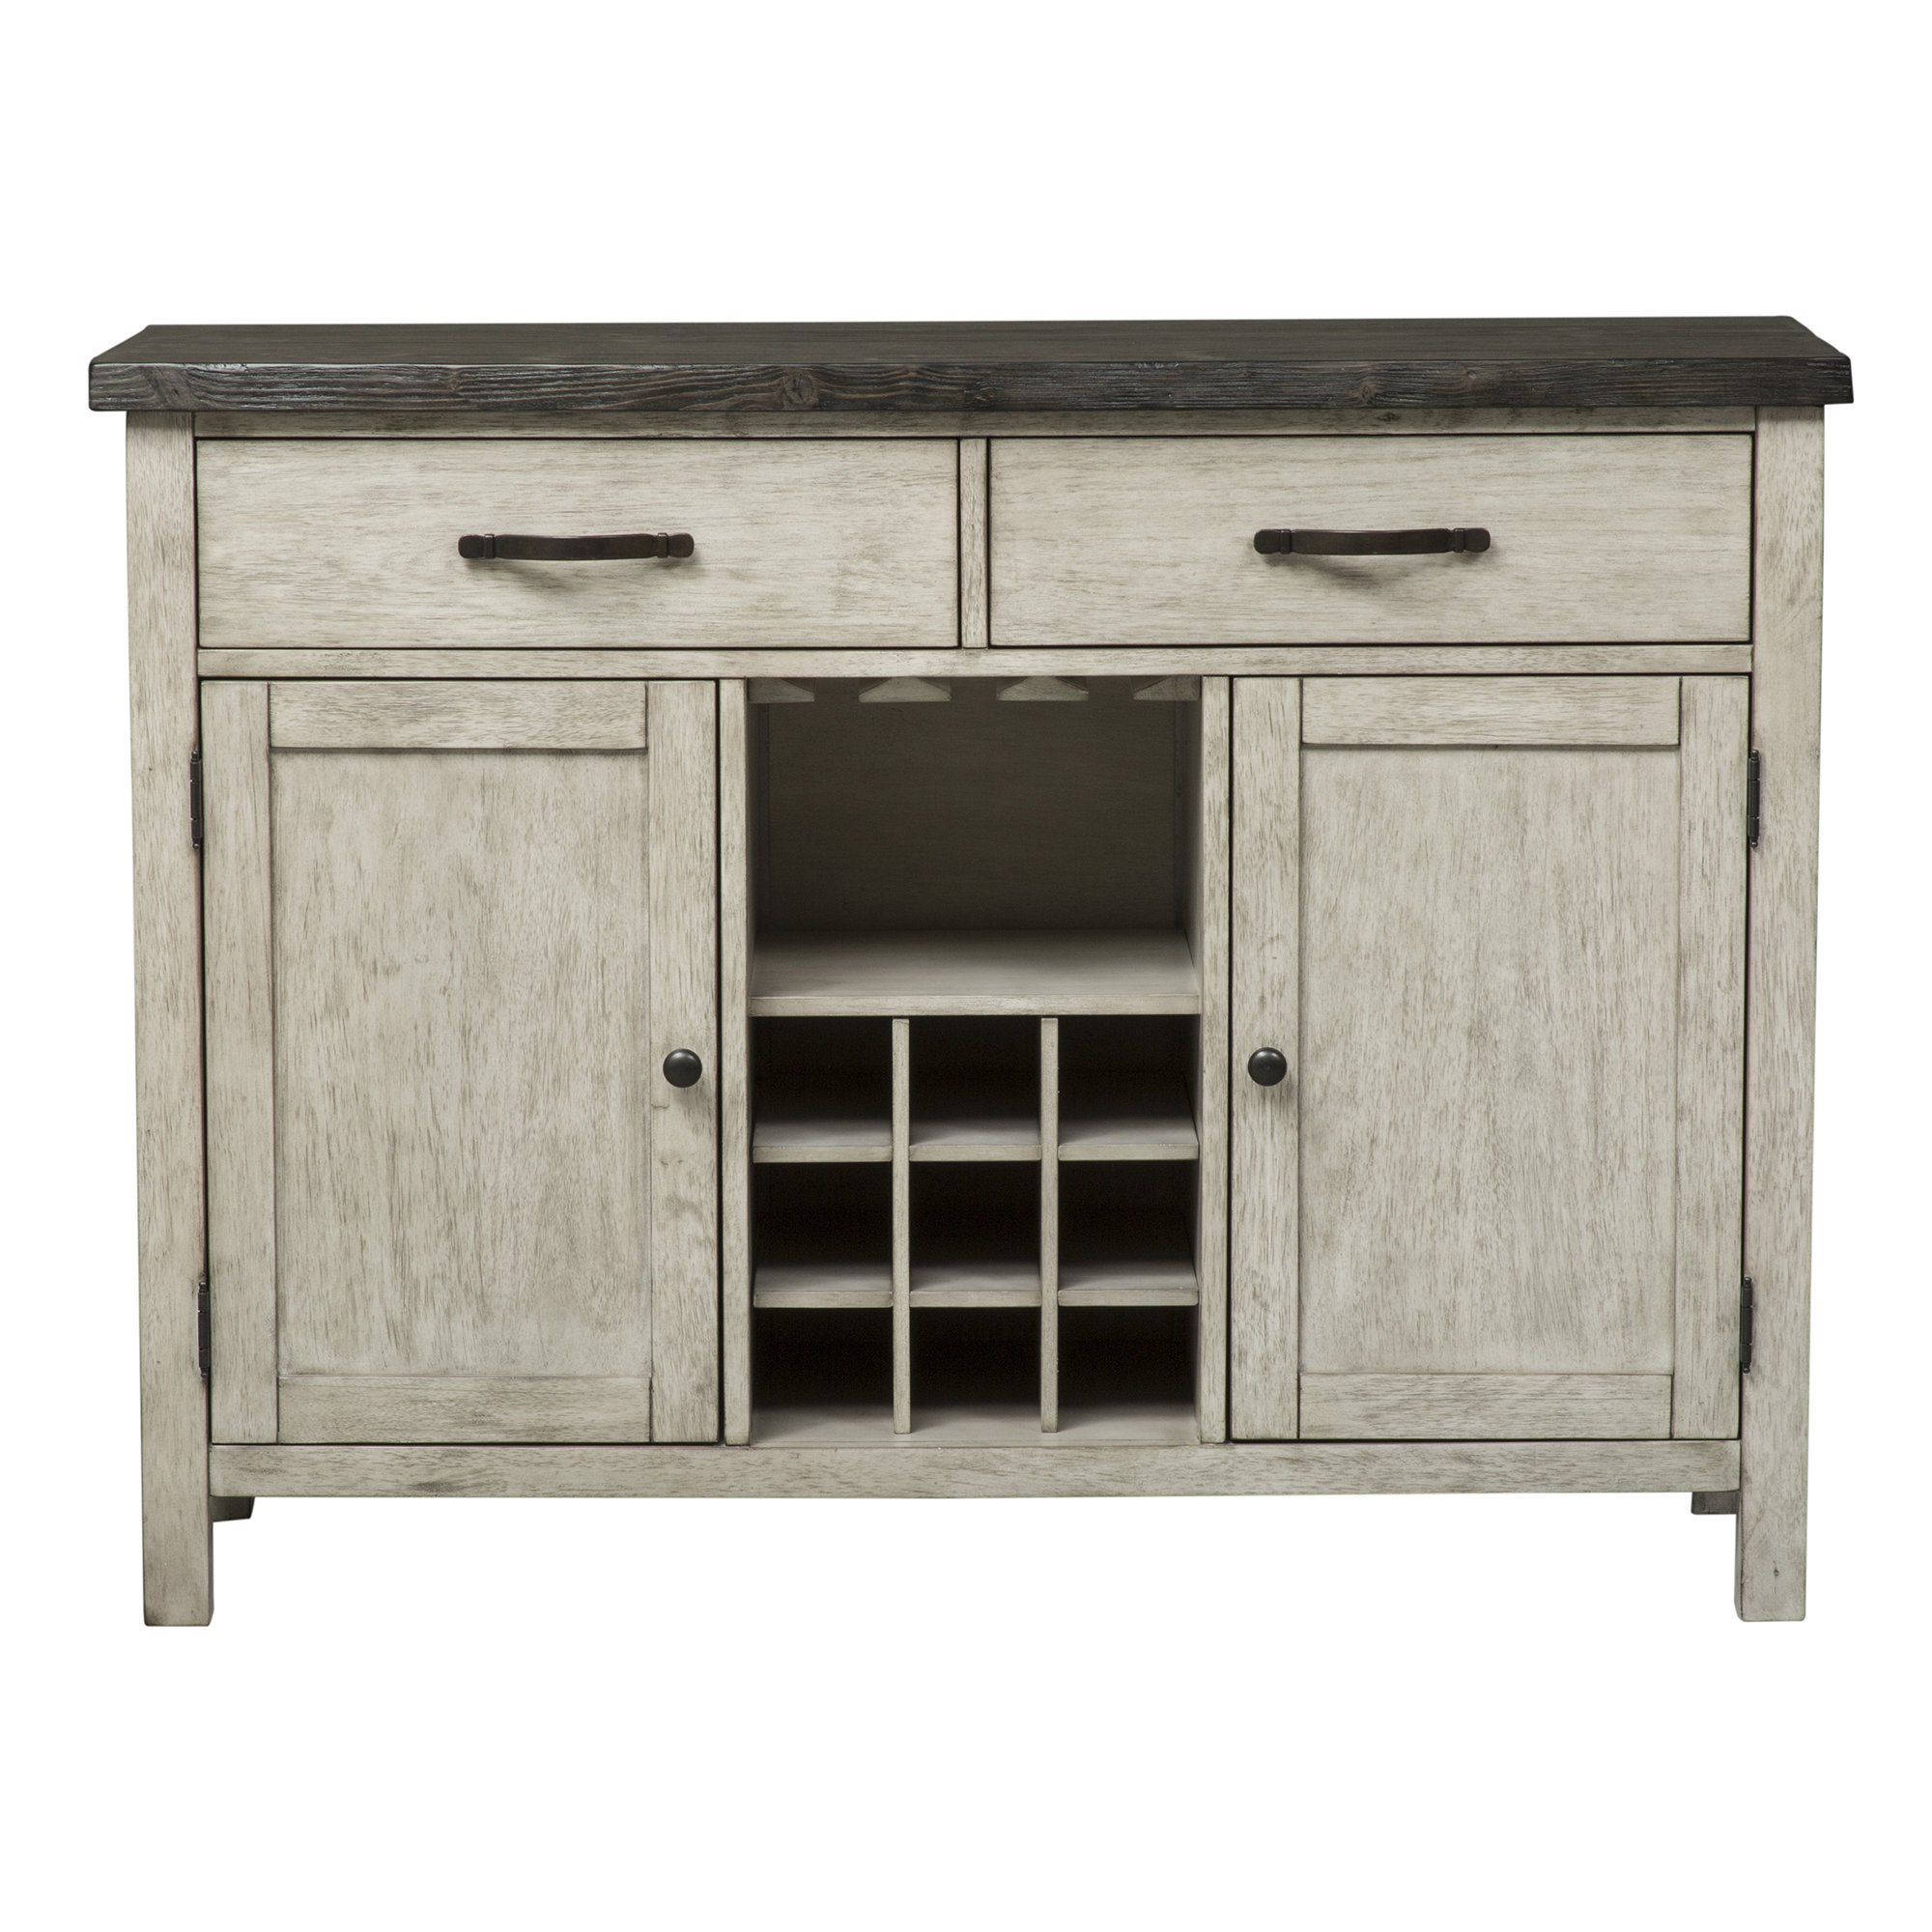 Beames Sideboard in Amityville Wood Sideboards (Image 15 of 30)